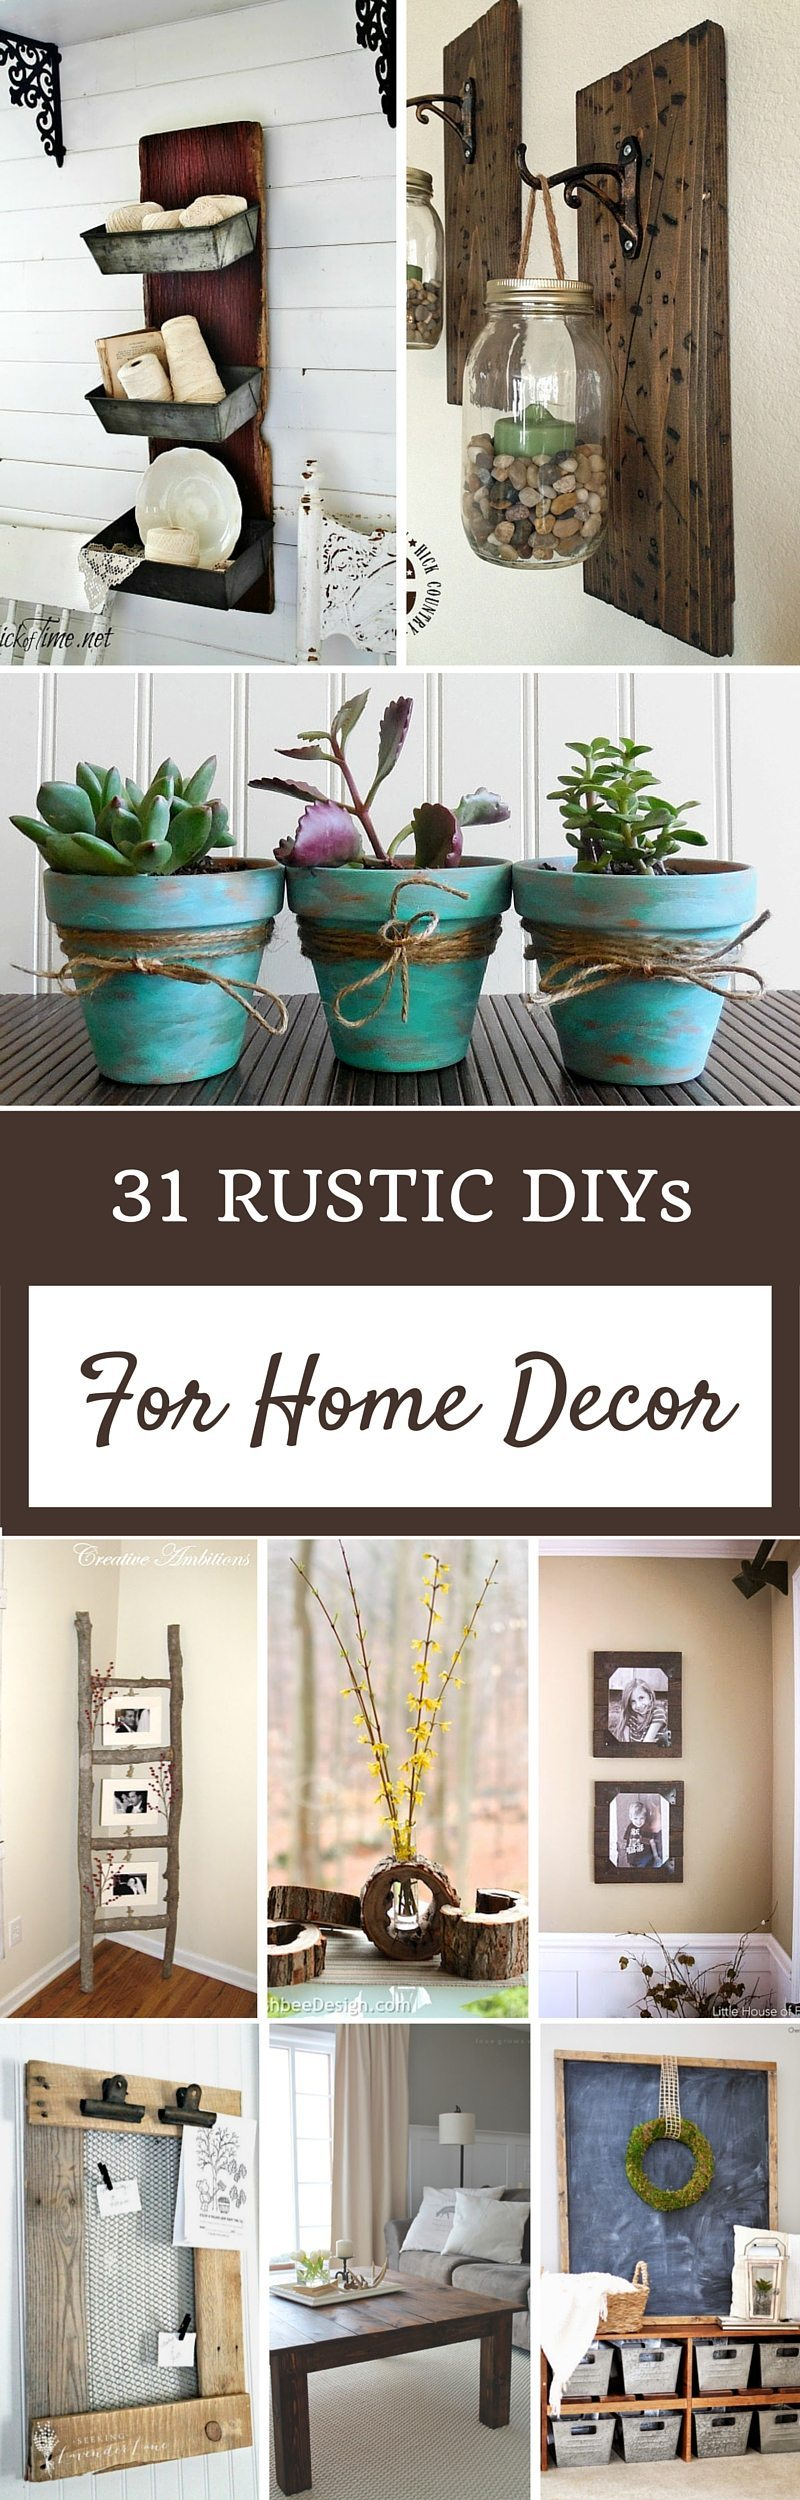 Rustic home decor ideas refresh restyle for Best home decor boards on pinterest